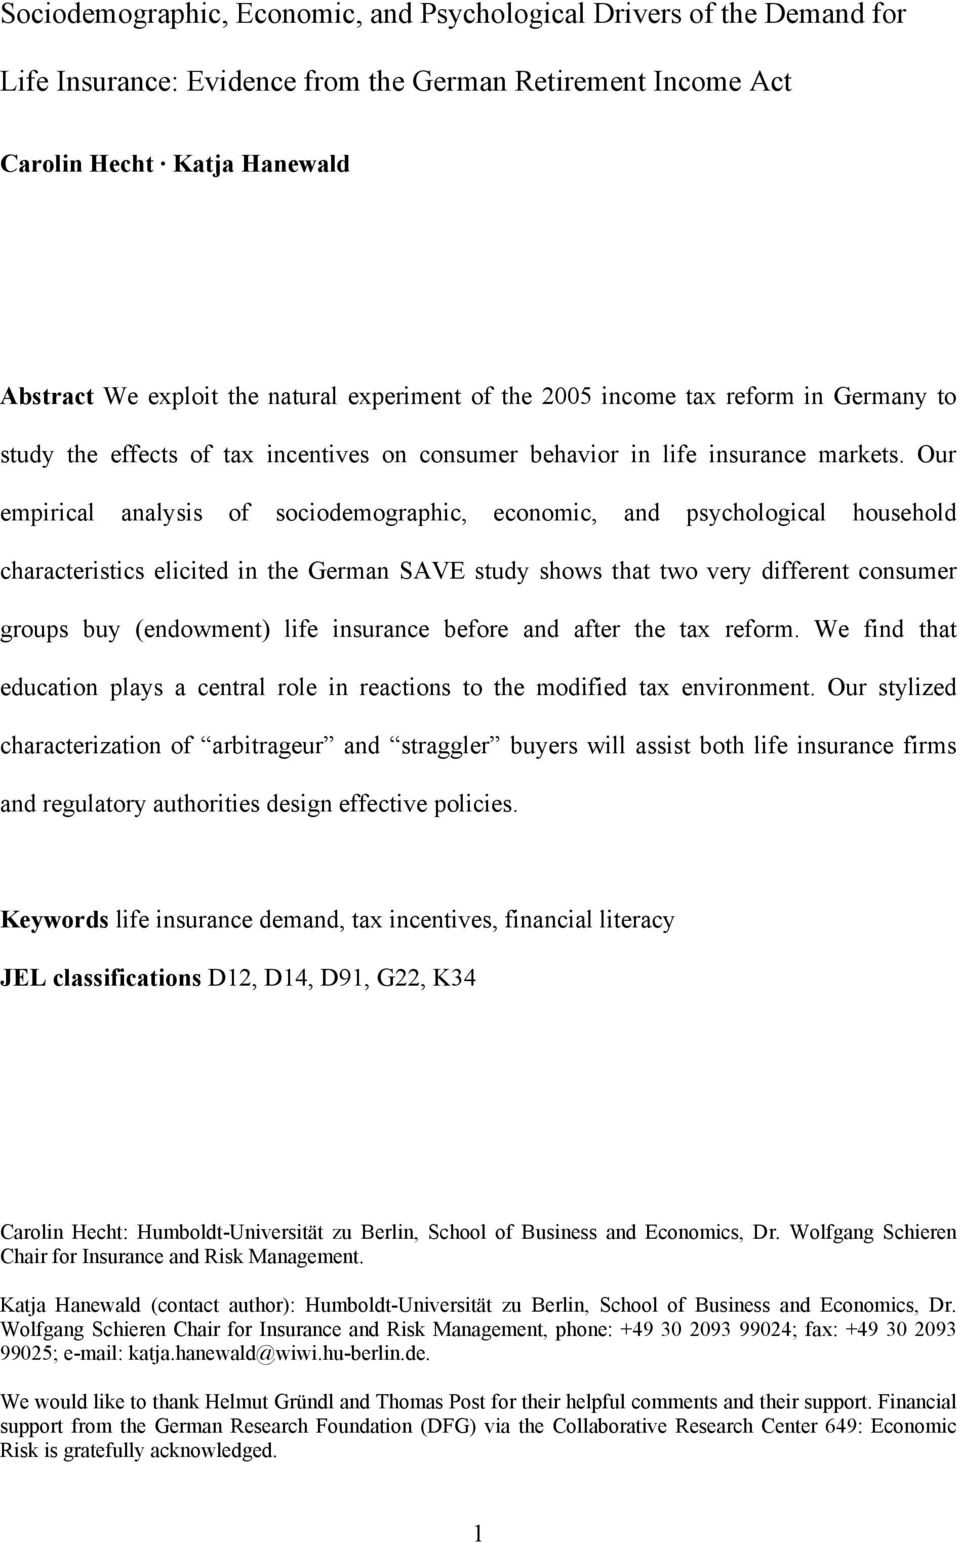 Our empirical analysis of sociodemographic, economic, and psychological household characteristics elicited in the German SAVE study shows that two very different consumer groups buy (endowment) life